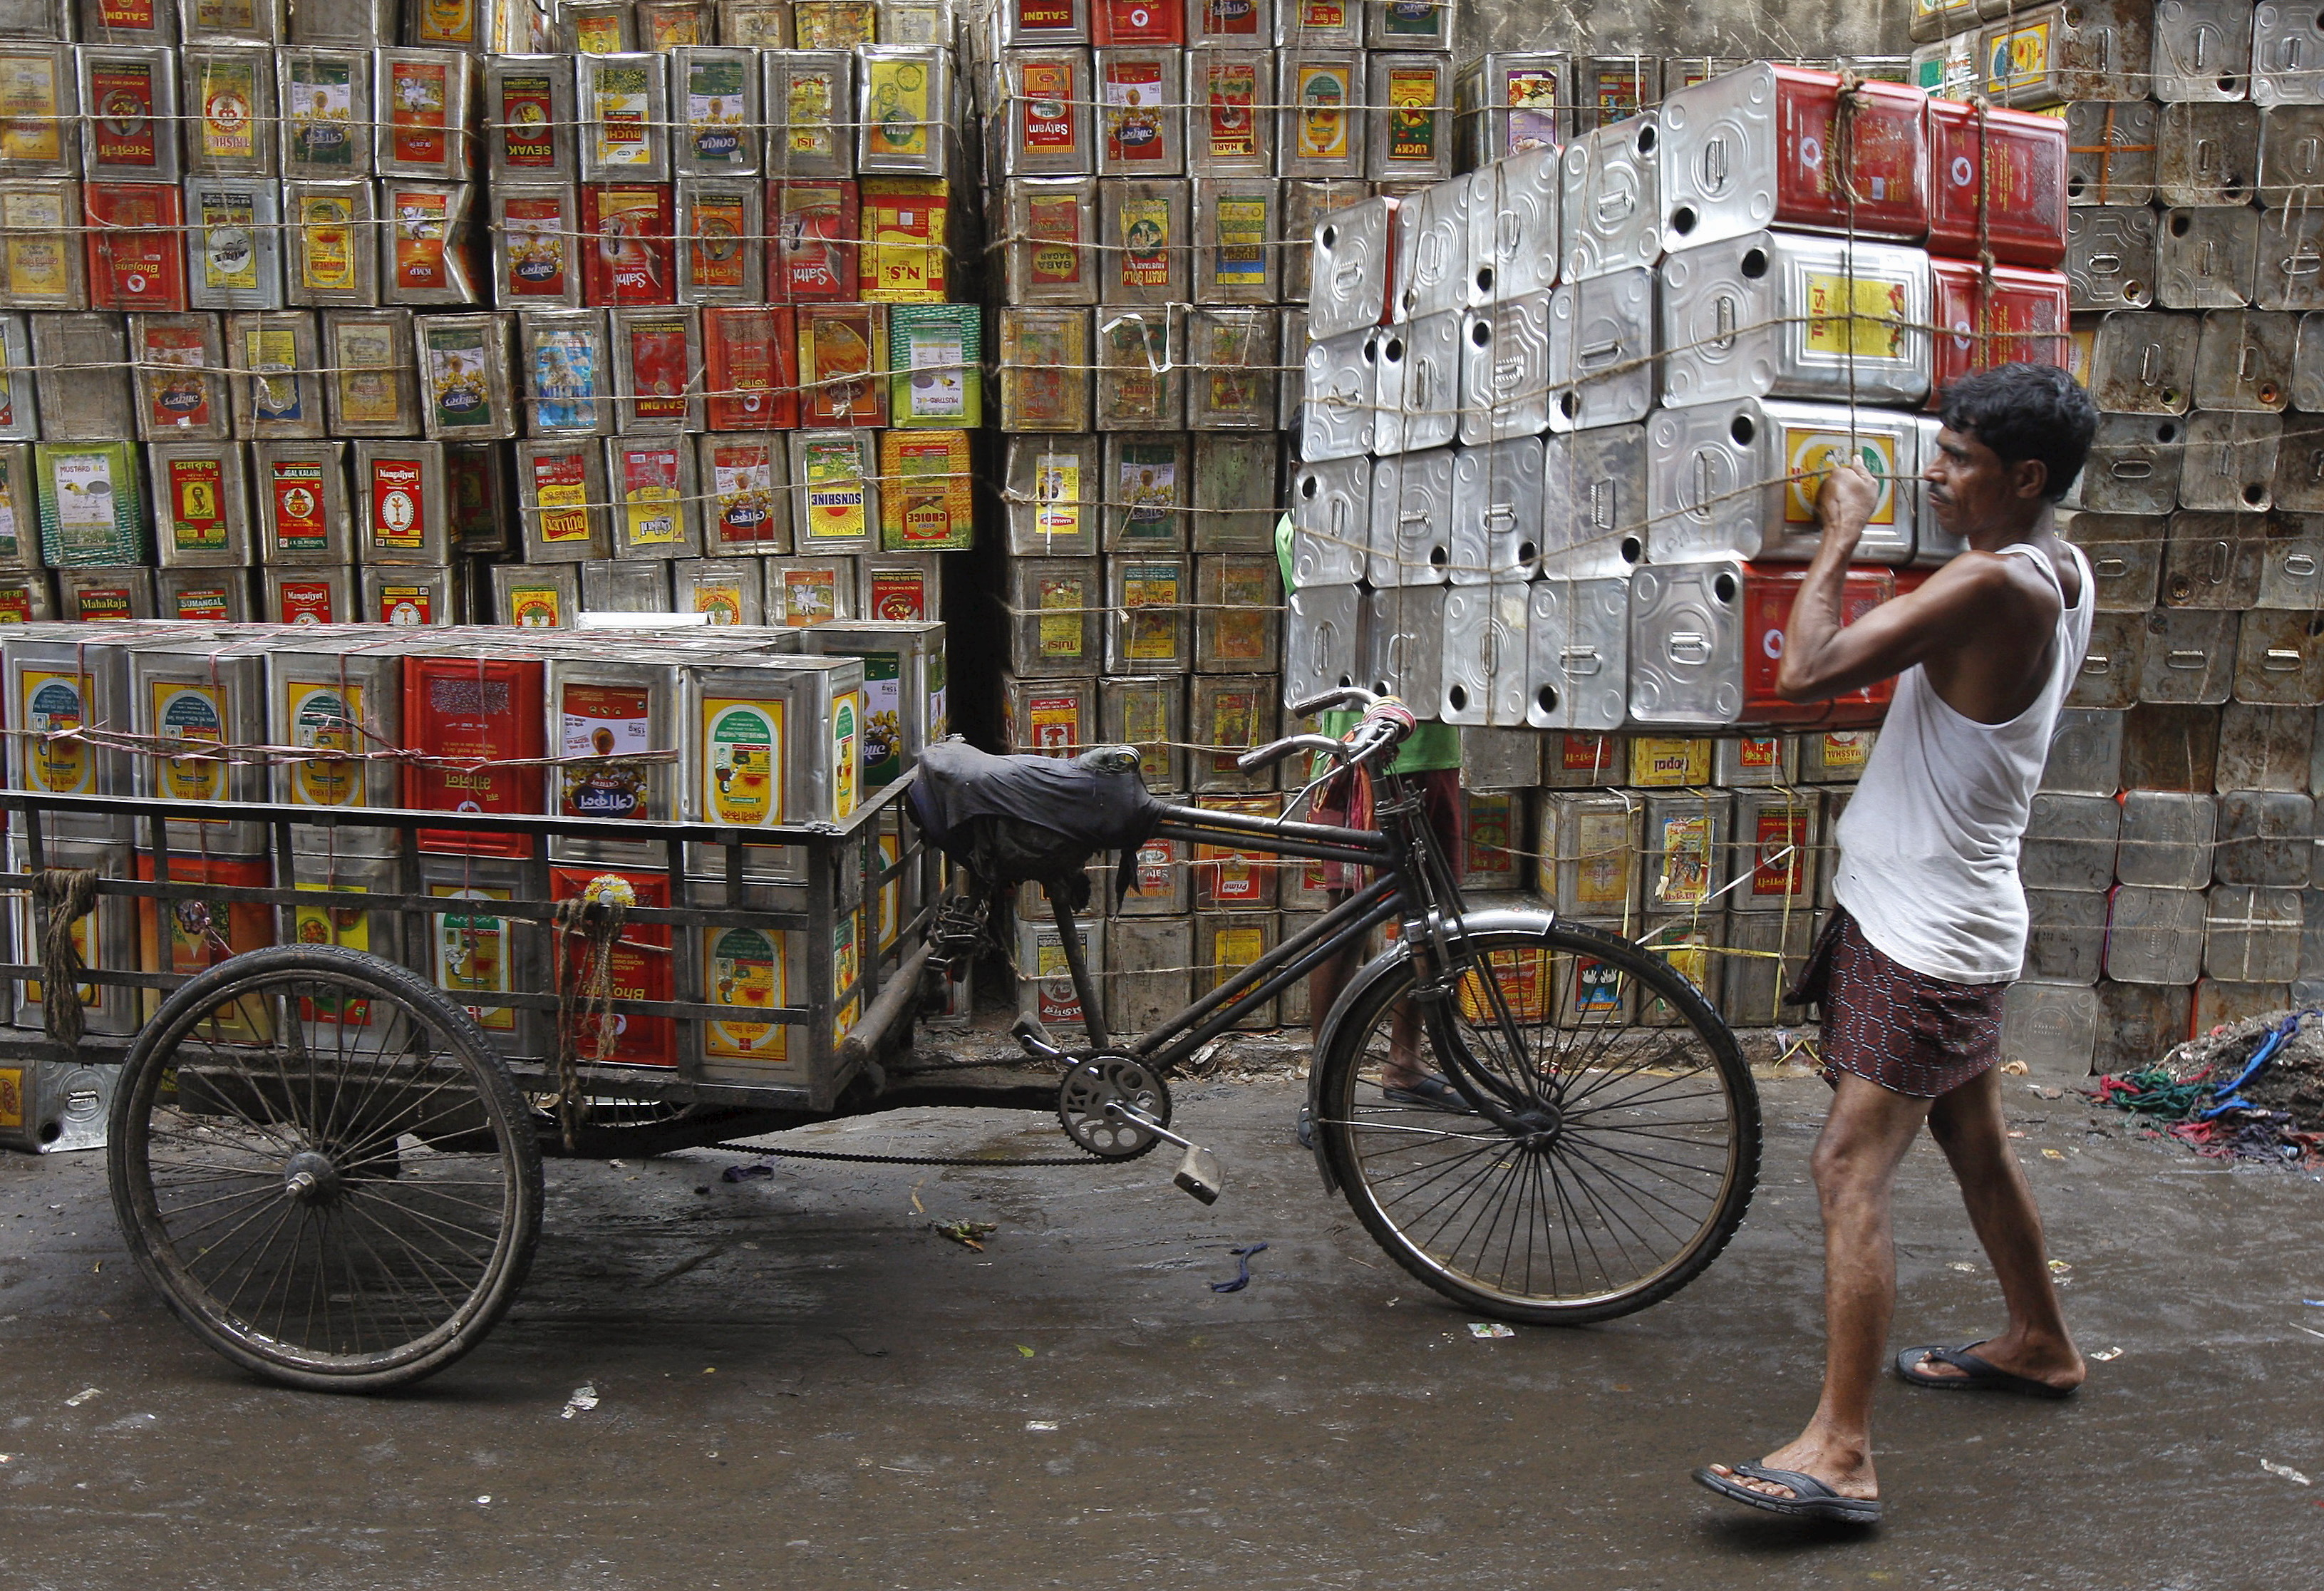 A man loads empty containers of edible oil onto a tricycle at a roadside in Kolkata, India, August 27, 2015. REUTERS/Rupak De Chowdhuri